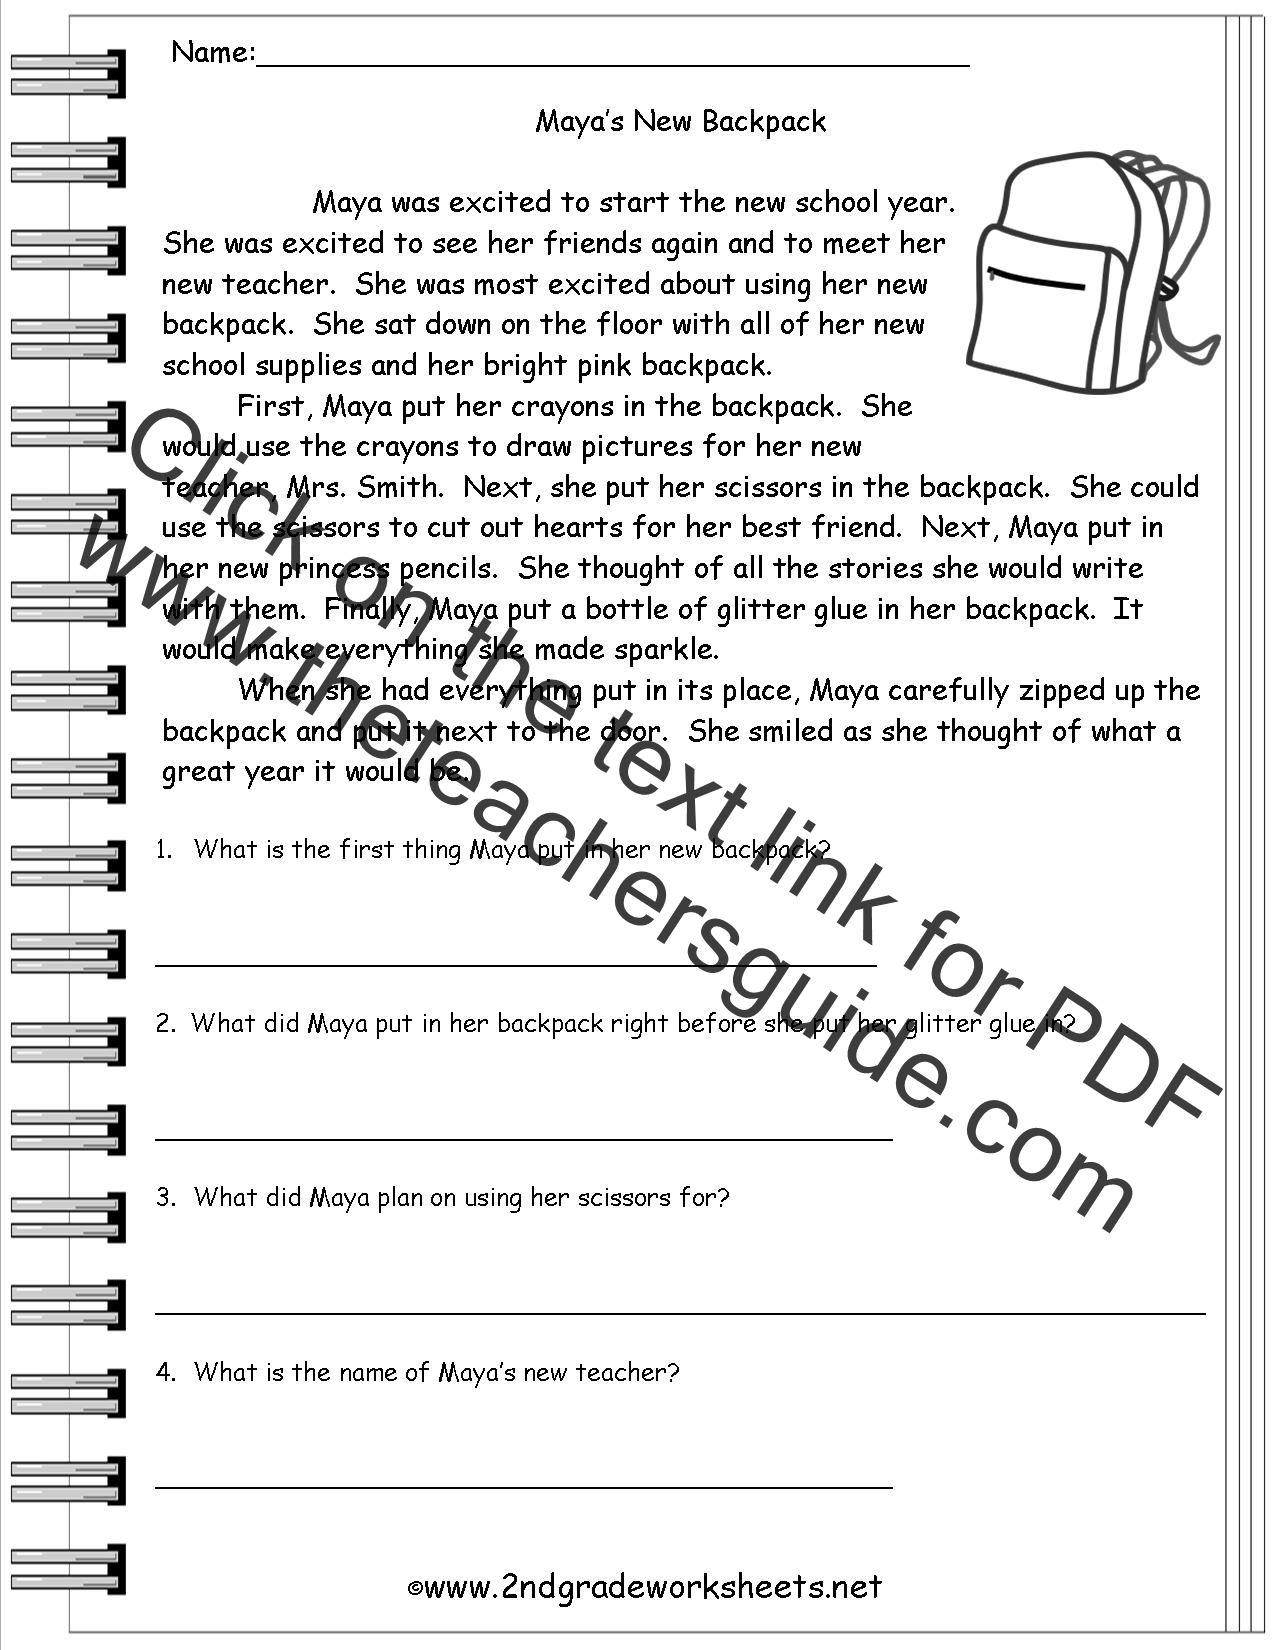 Worksheets 4th Grade Main Idea Worksheets reading worksheeets worksheets